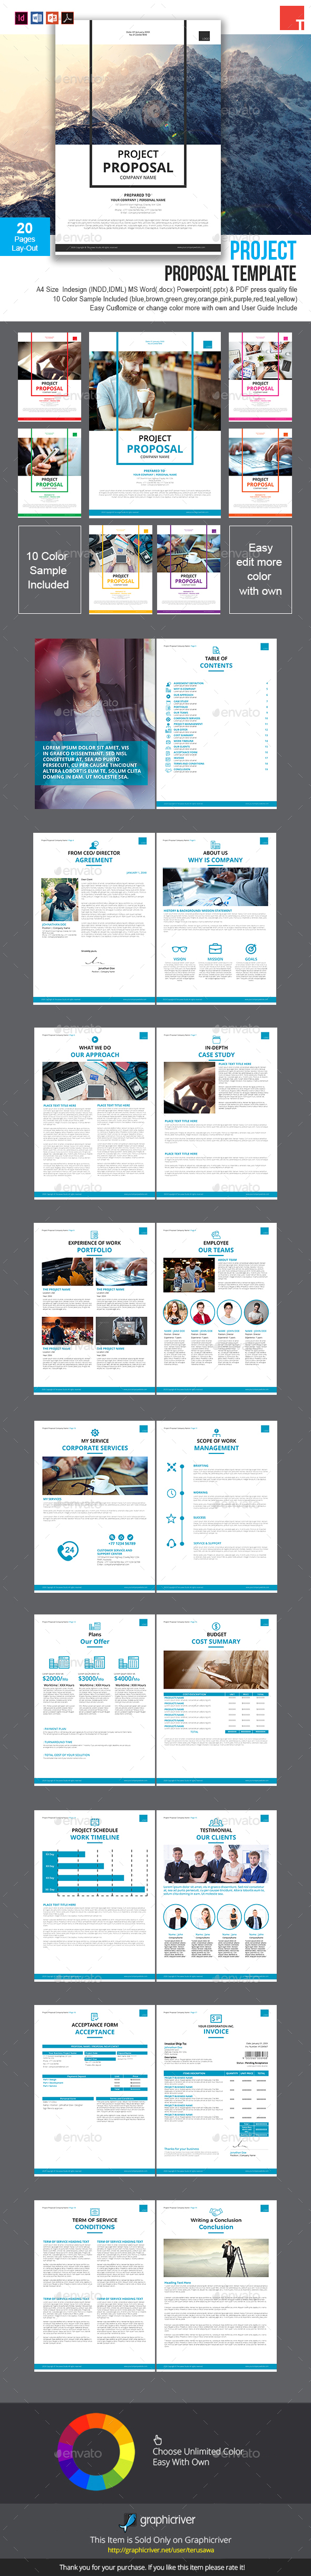 GraphicRiver Project Proposal Template 20886106